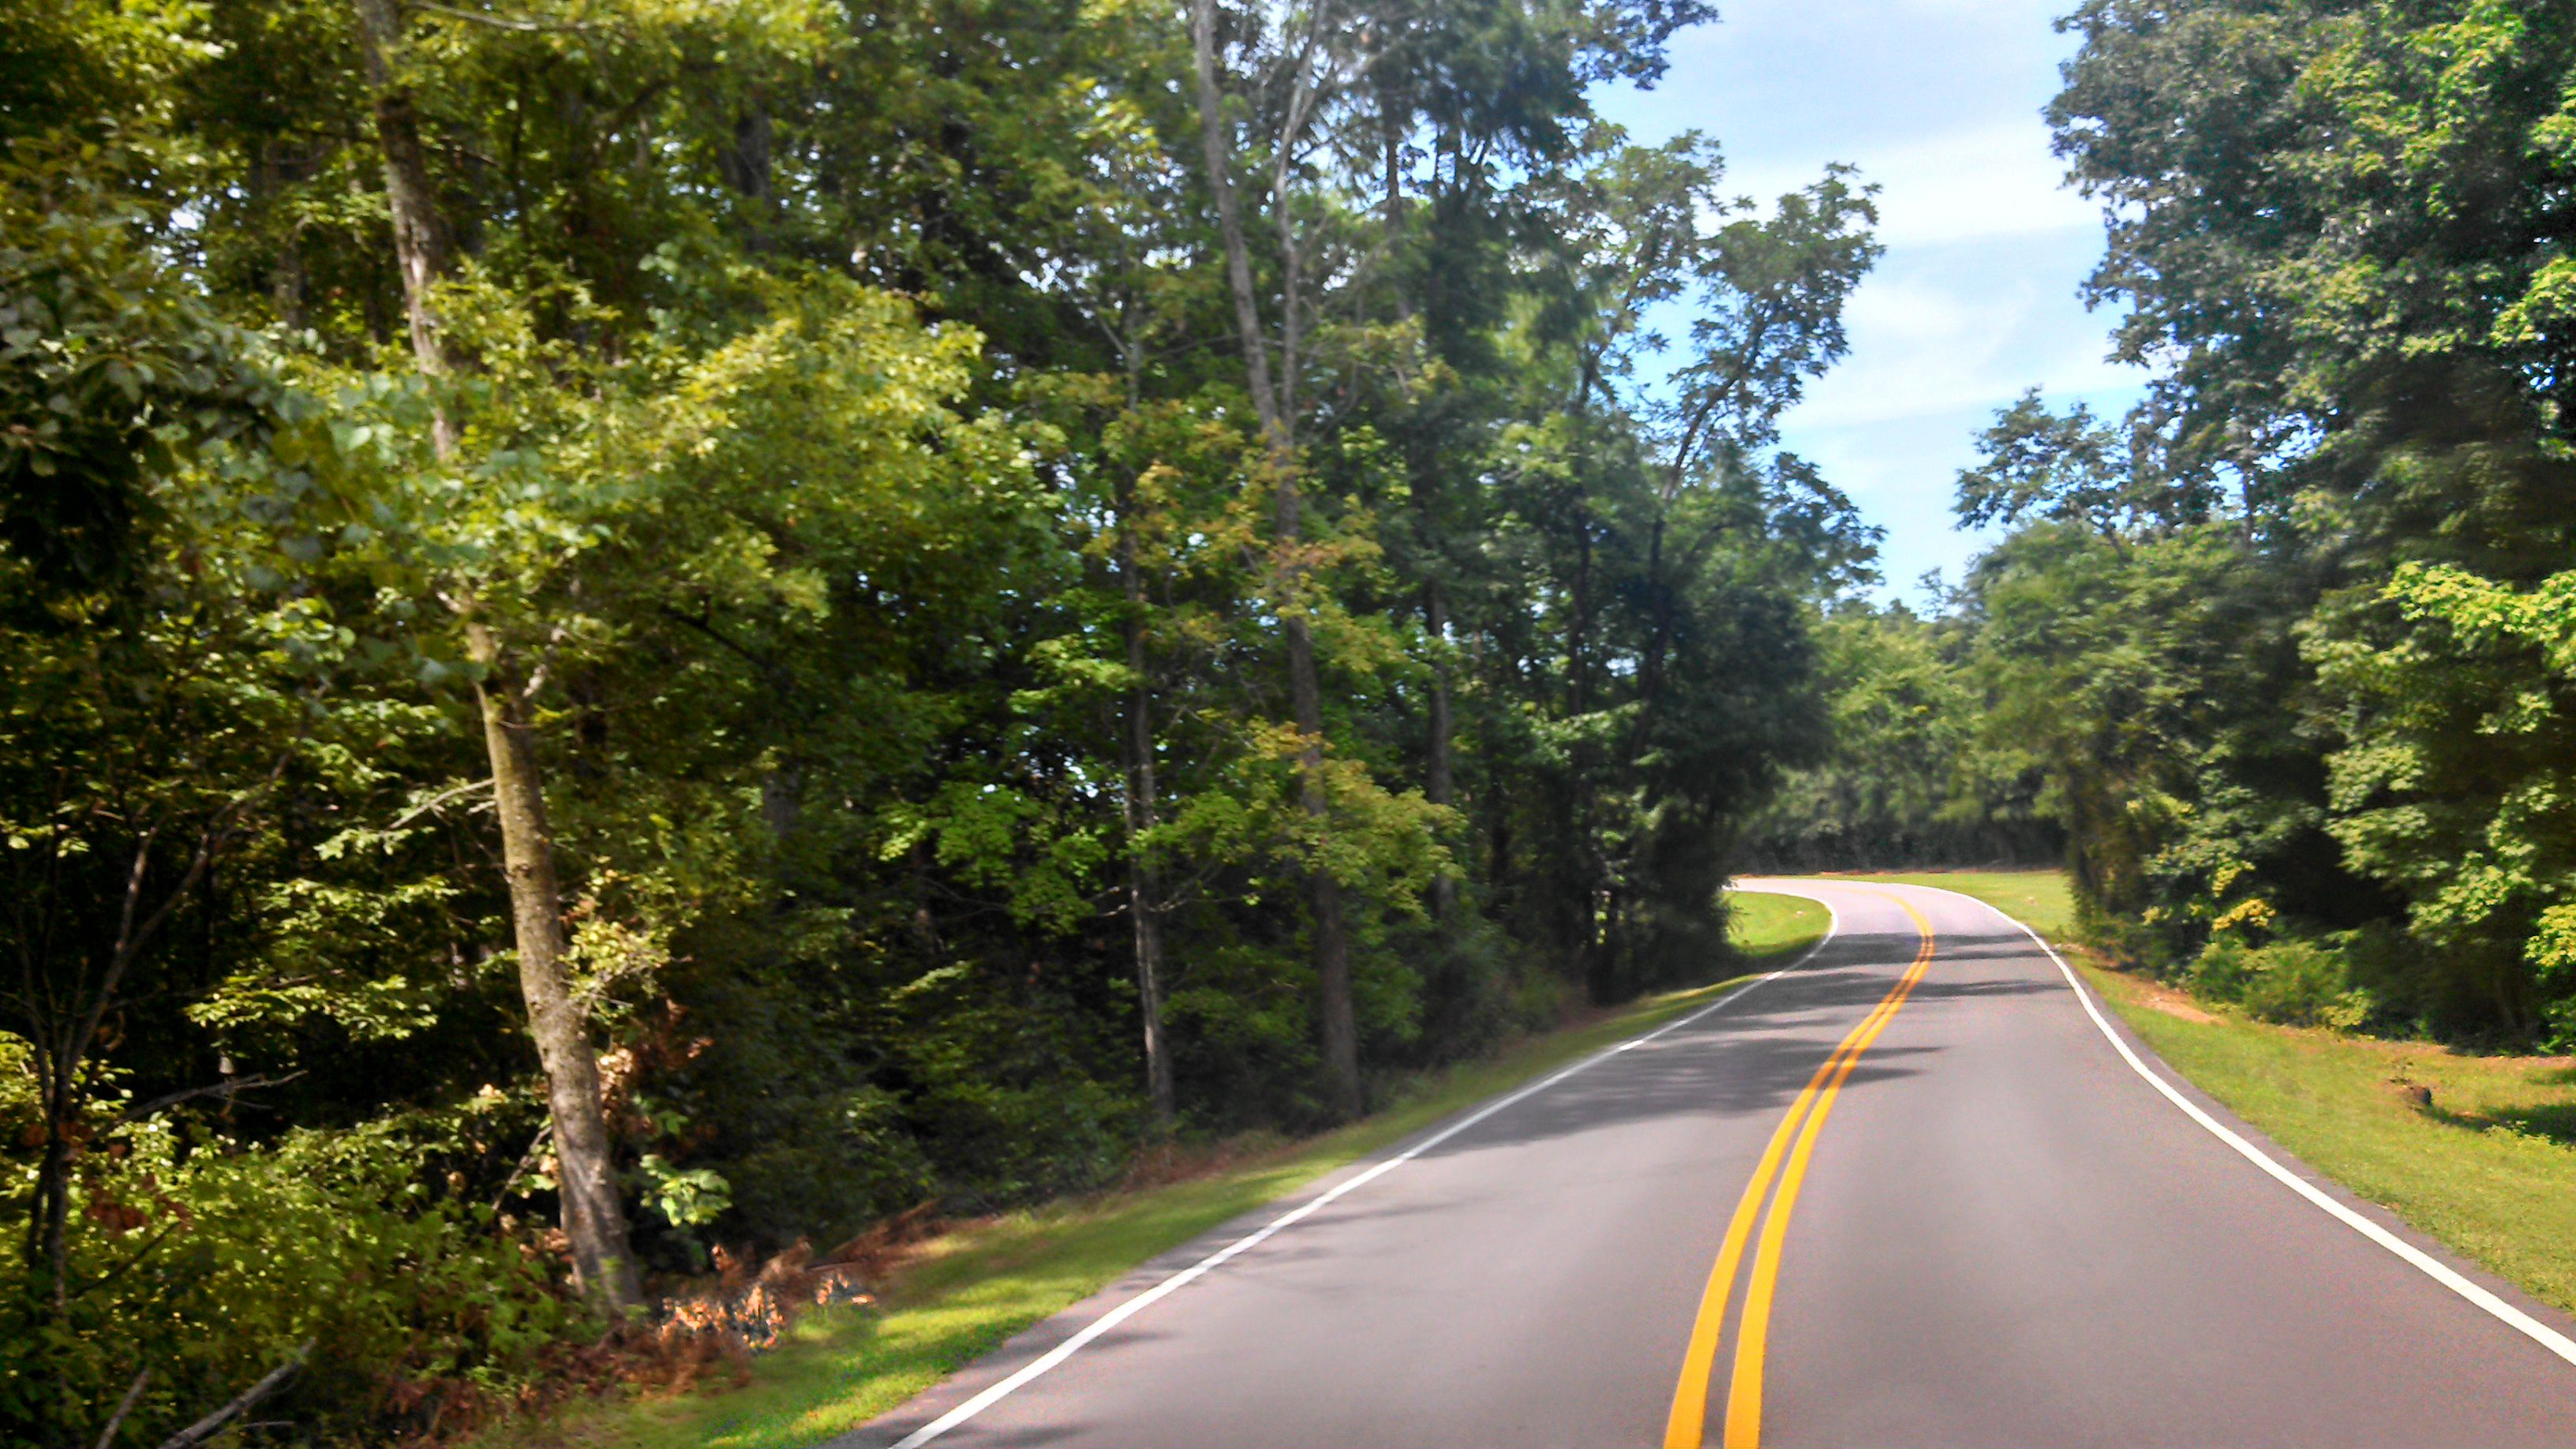 TDOT's Adopt-A-Highway program is celebrating 30 years of beautifying Tennessee roadsides. The program began statewide in 1989 as a means for individuals...